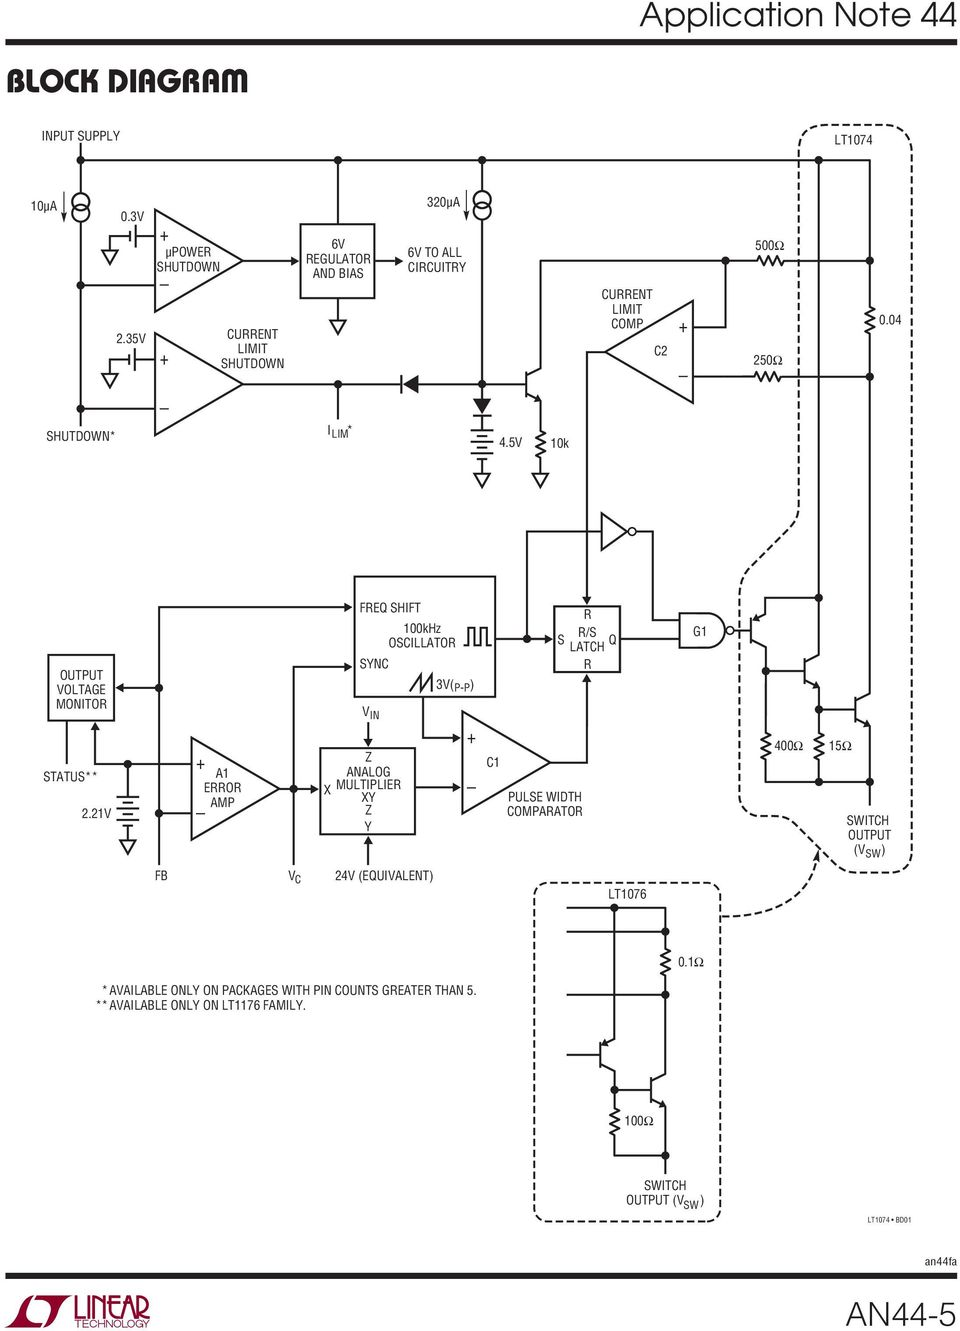 Application Note 44 September Lt1074 Lt1076 Design Manual An44 1 National Lm555 Datasheet Replacement For Se555 Ne555 Series And The Connection Diagram 4 Shutdown I Lim 45v 1k Output Voltage Monitor Freq Shift Sync V